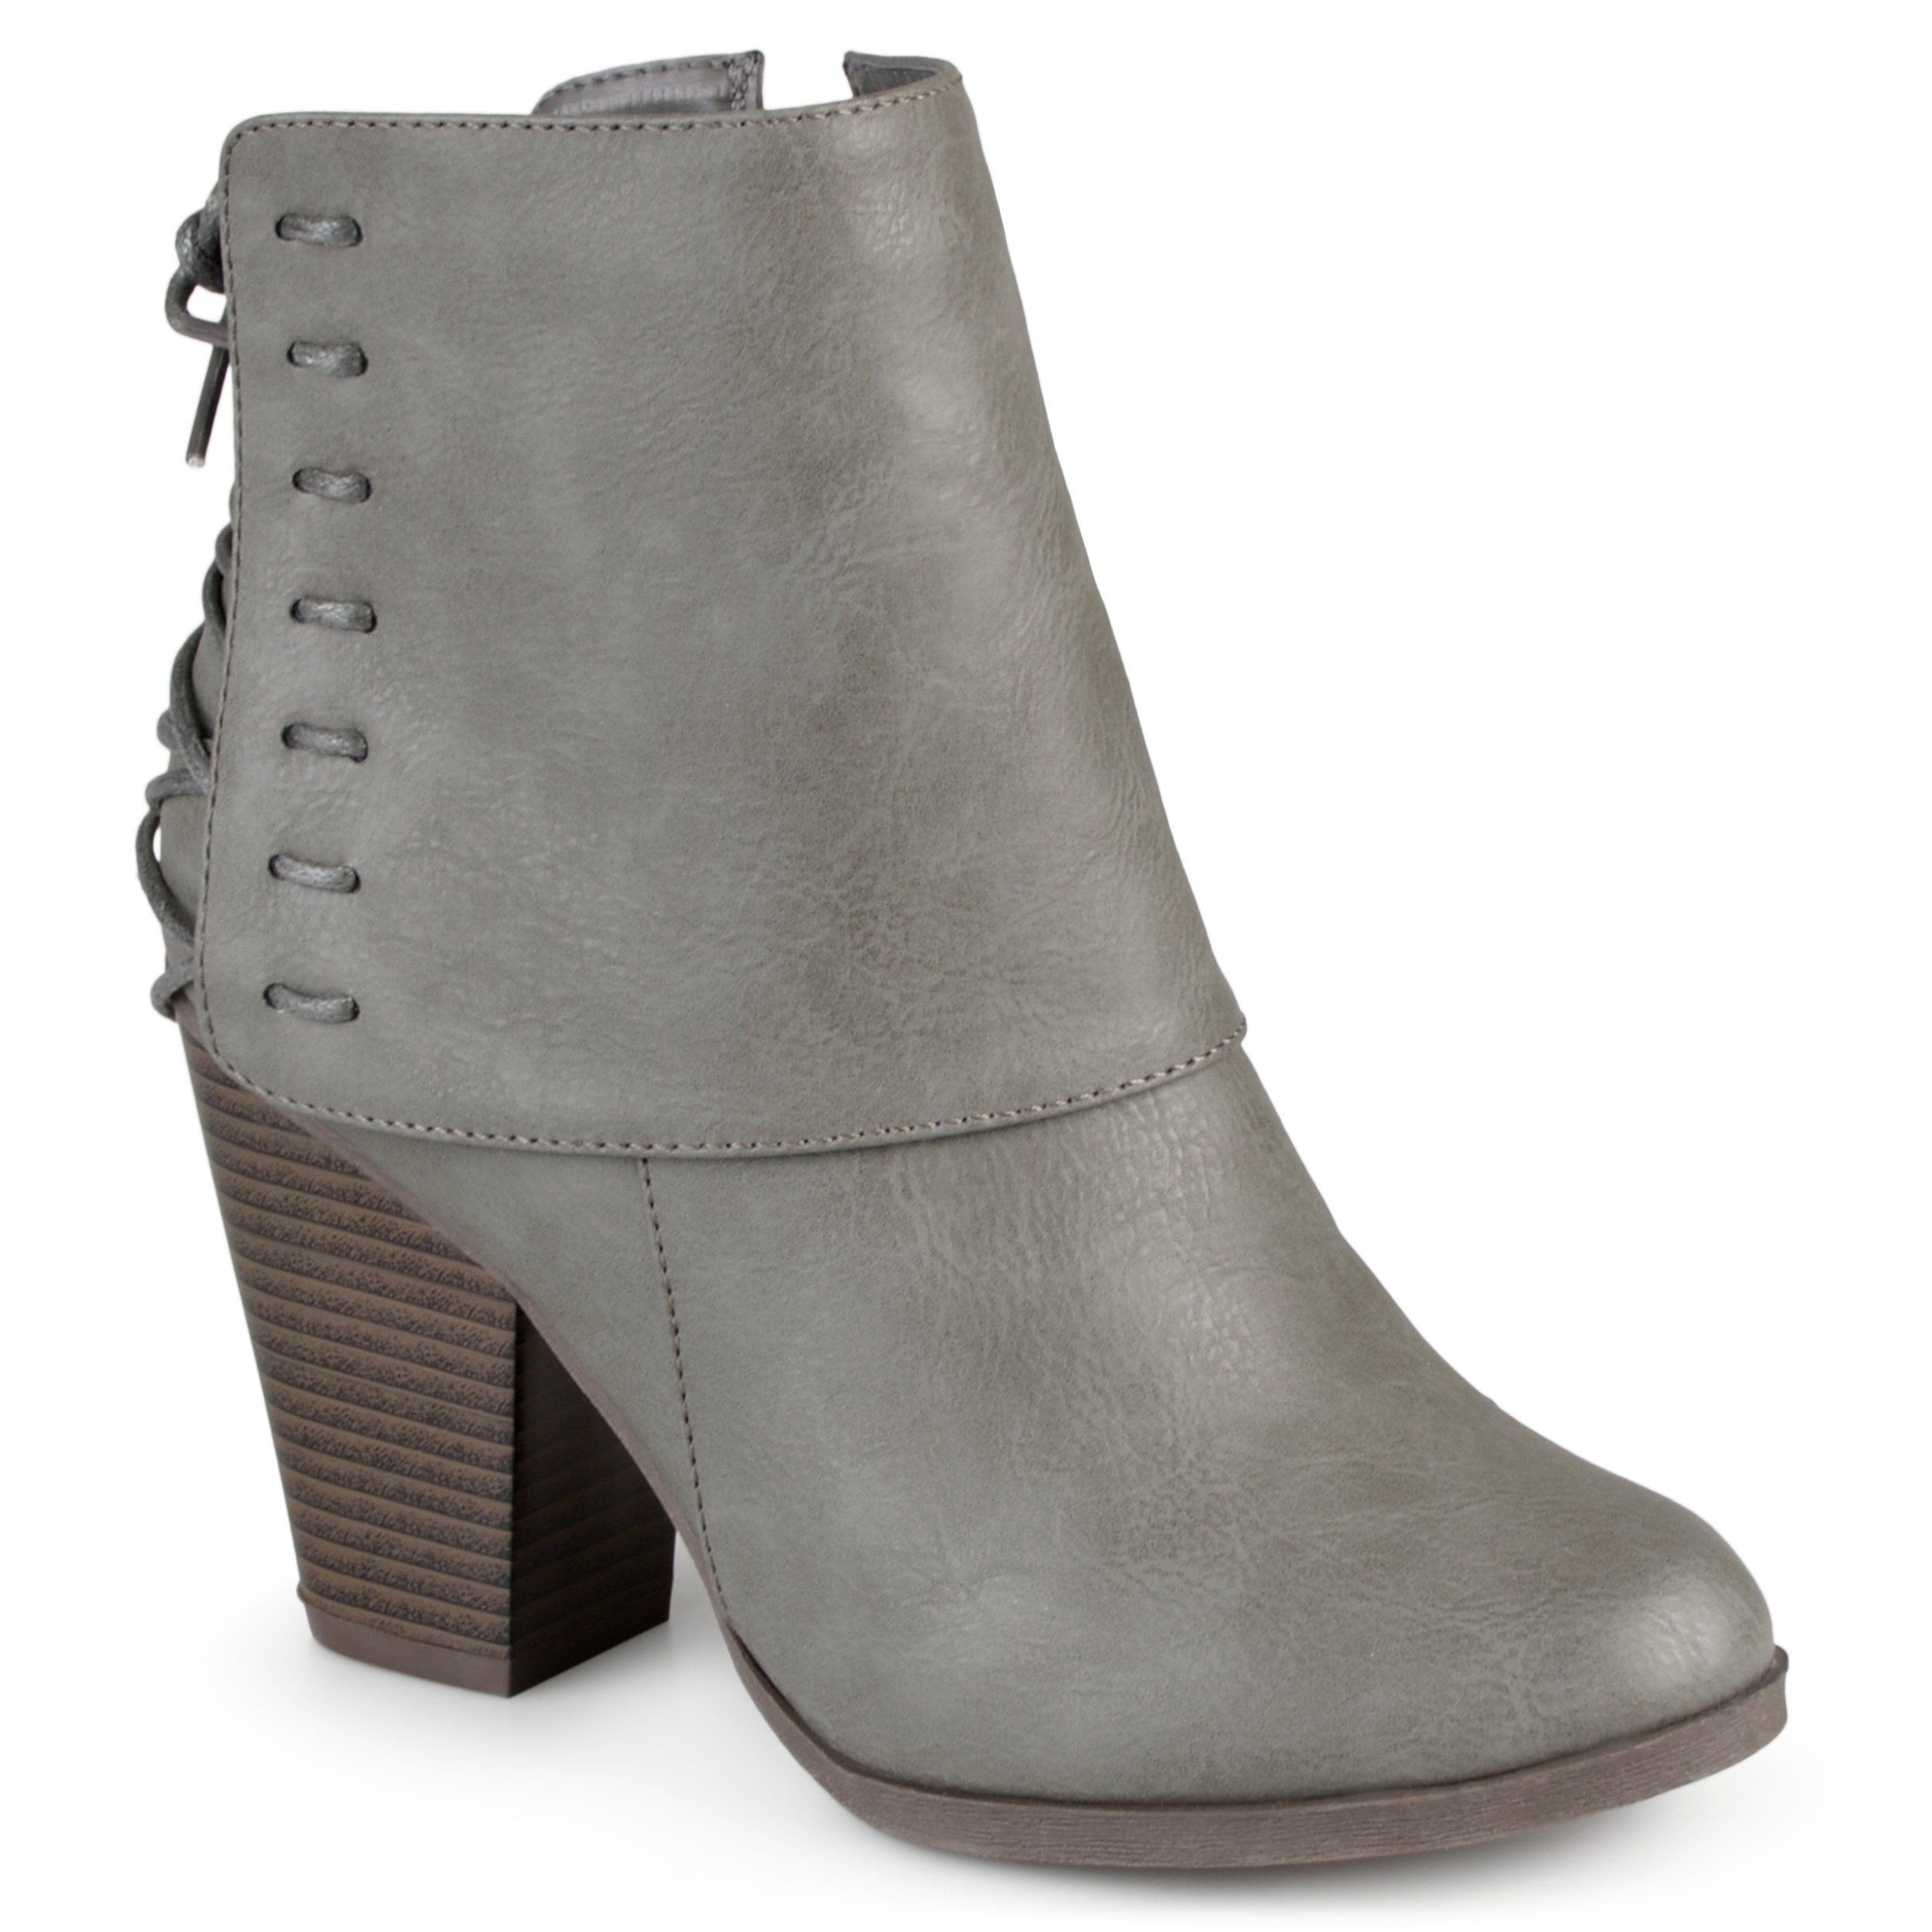 Journee Collection Womens High Heel Corset Lace Chunky Heel Ankle Boots Grey, 7.5 Regular US